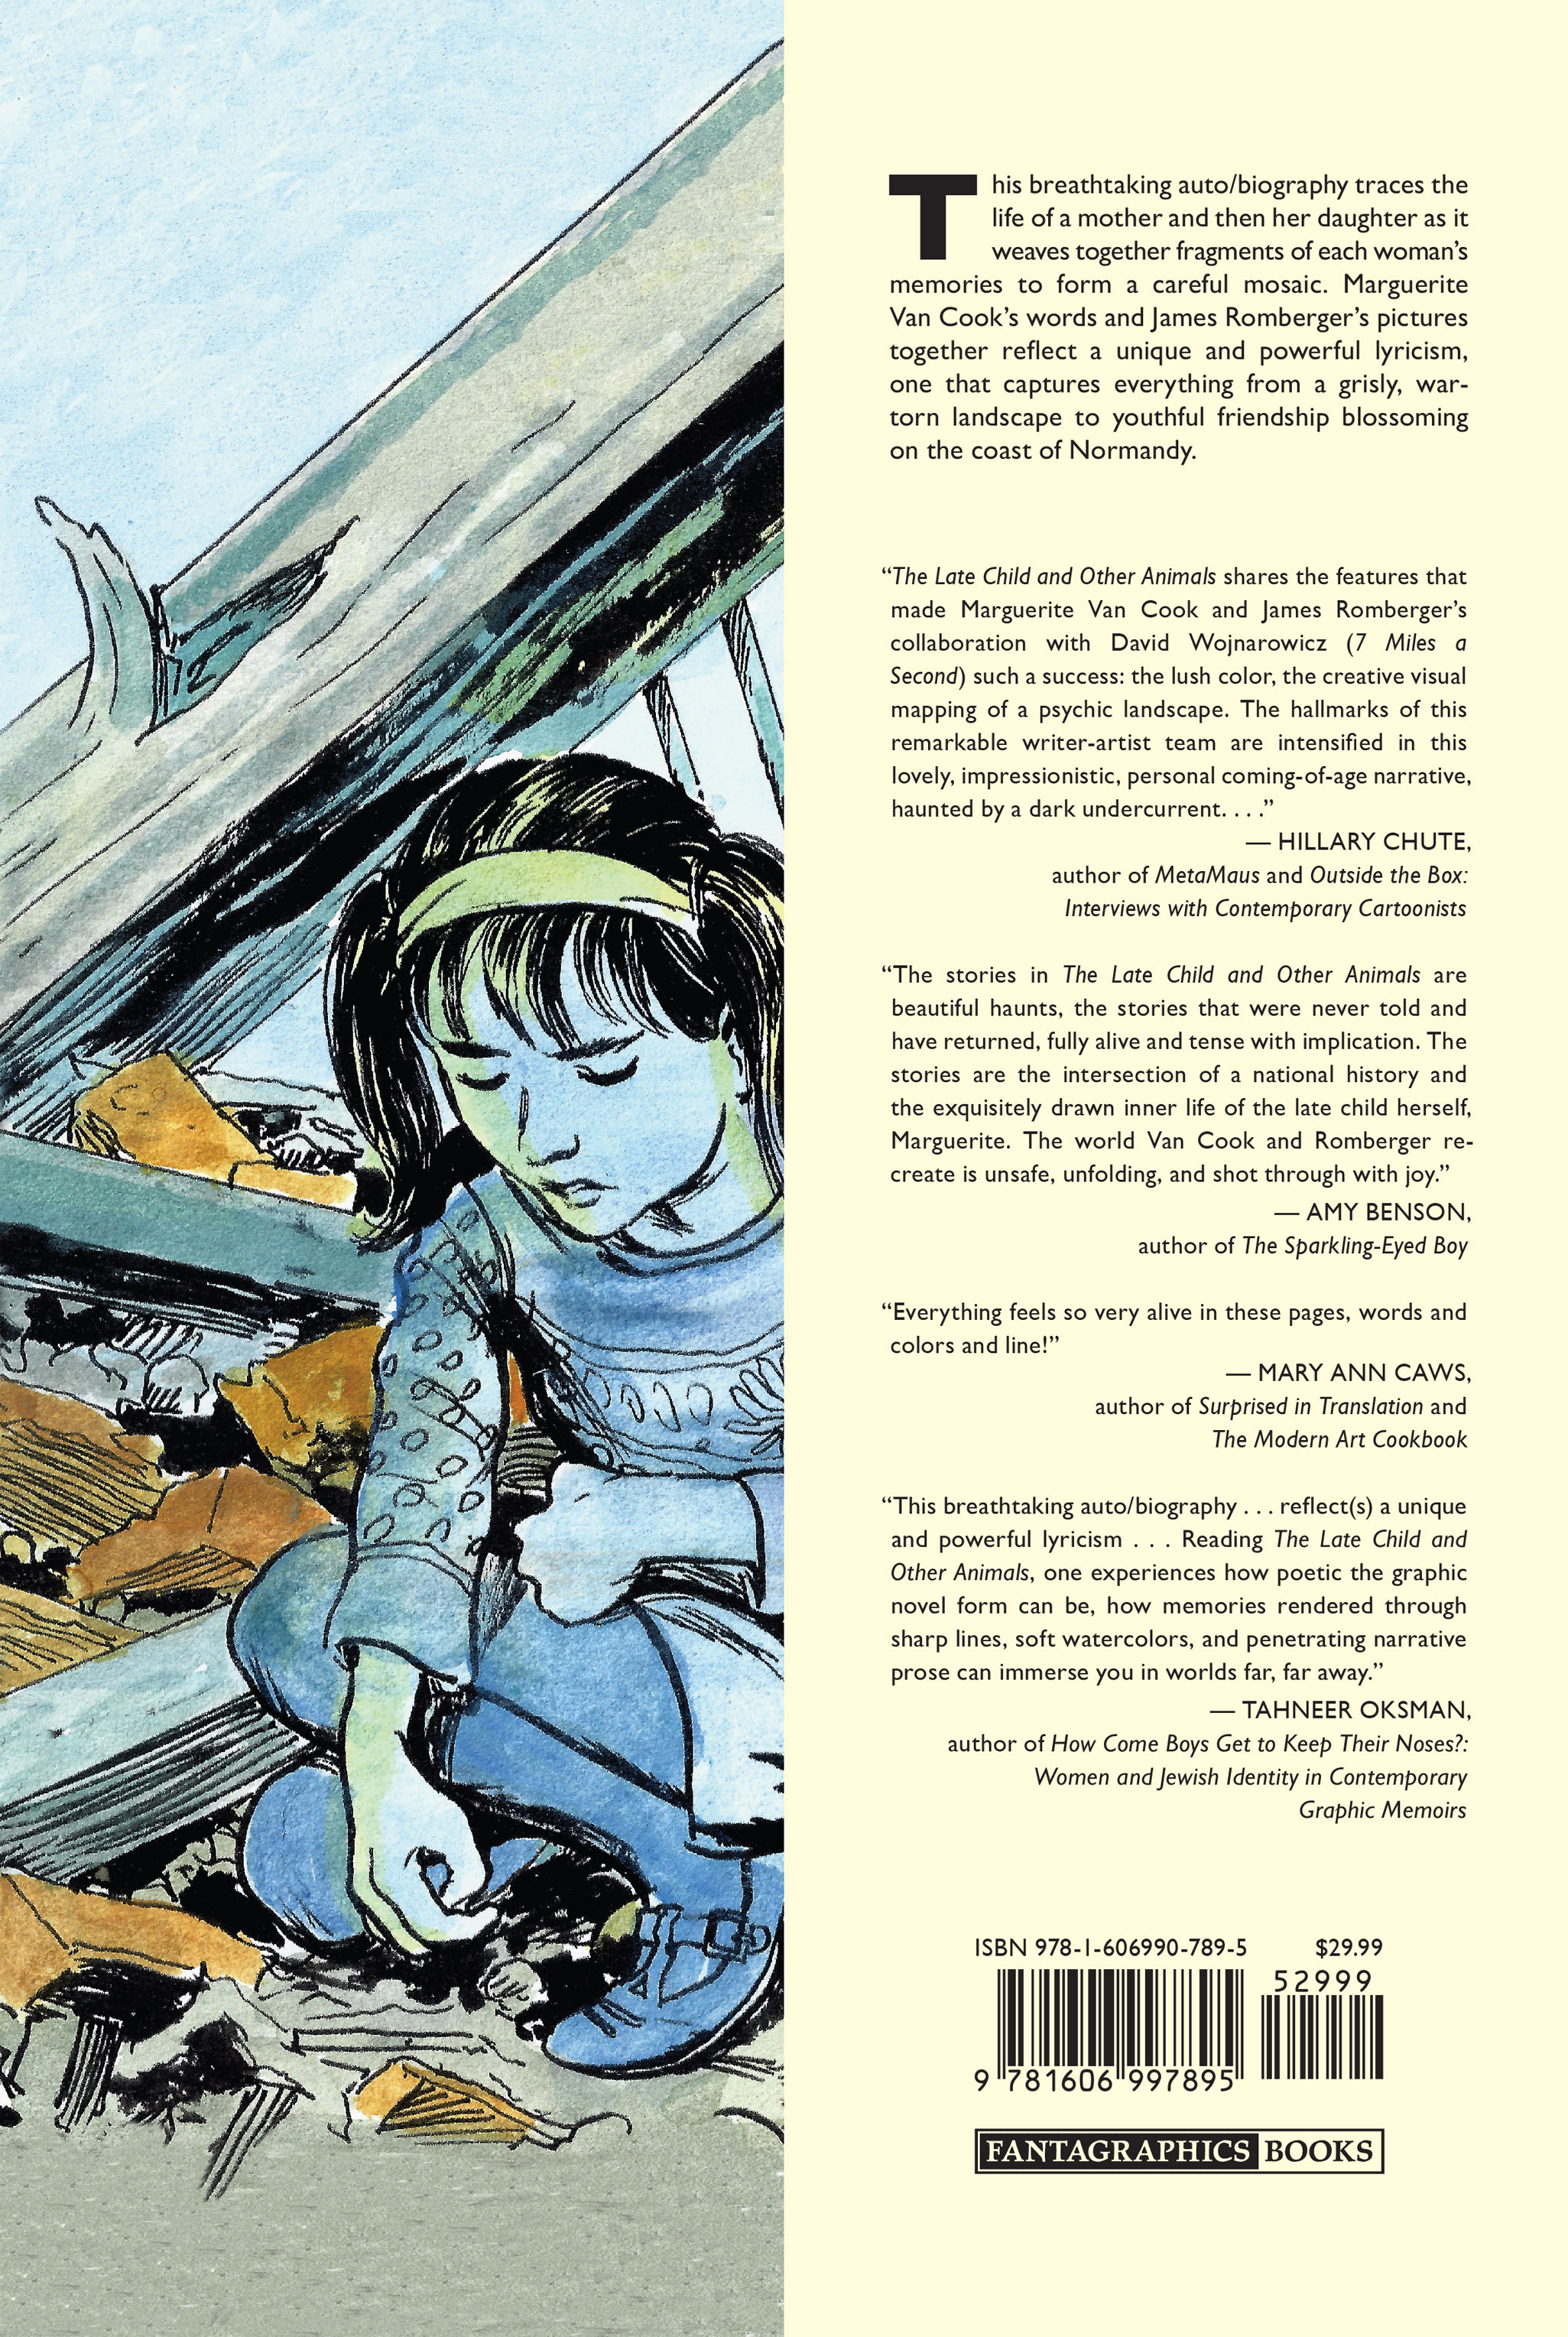 Read online The Late Child and Other Animals comic -  Issue #1 - 160